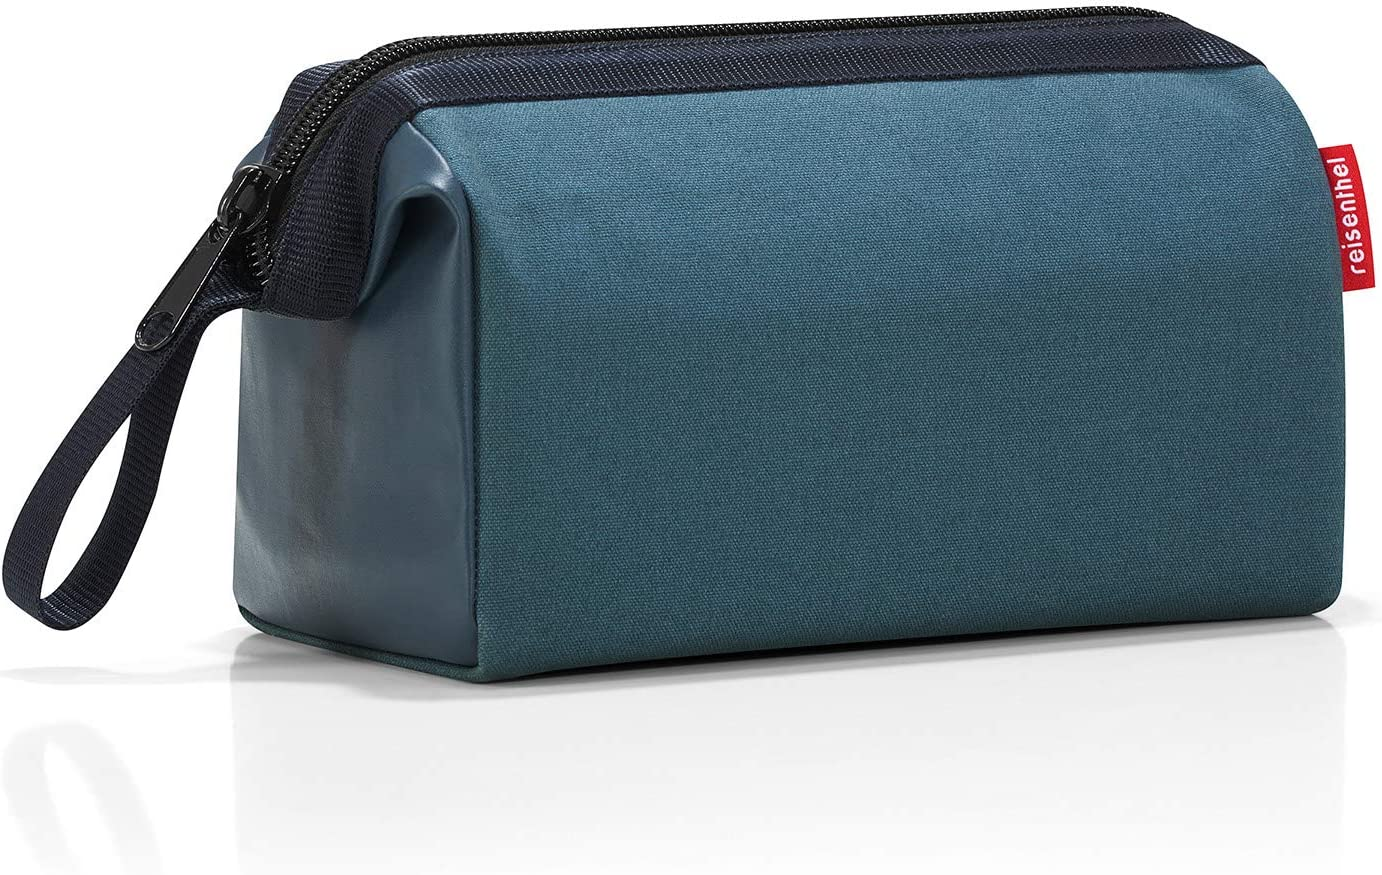 reisenthel Travelcosmetic Toiletries Virginia 5 ☆ very popular Beach Mall Bag Pouch with Structured